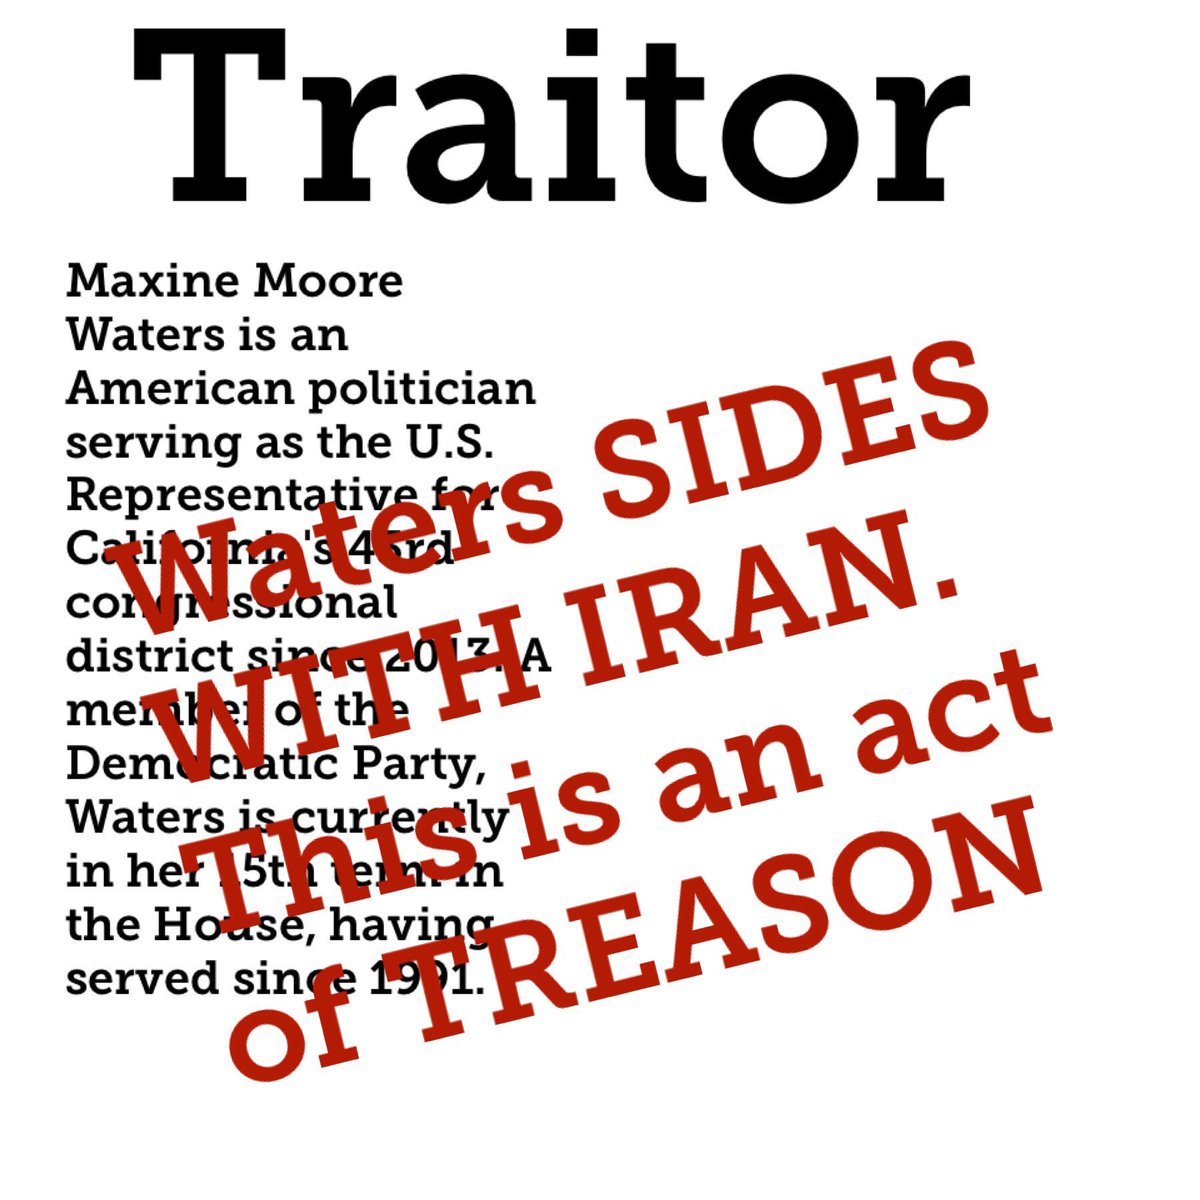 We can not allow thIS TRAITOR to represent ANY AMERICAN https://hannity.com/media-room/maxine-meltdown-rep-waters-sides-with-iran-says-us-drone-violated-tehrans-airspace/… MAKE THIS STOP. DO SOMETHING #VOTE @RealOmarNavarro